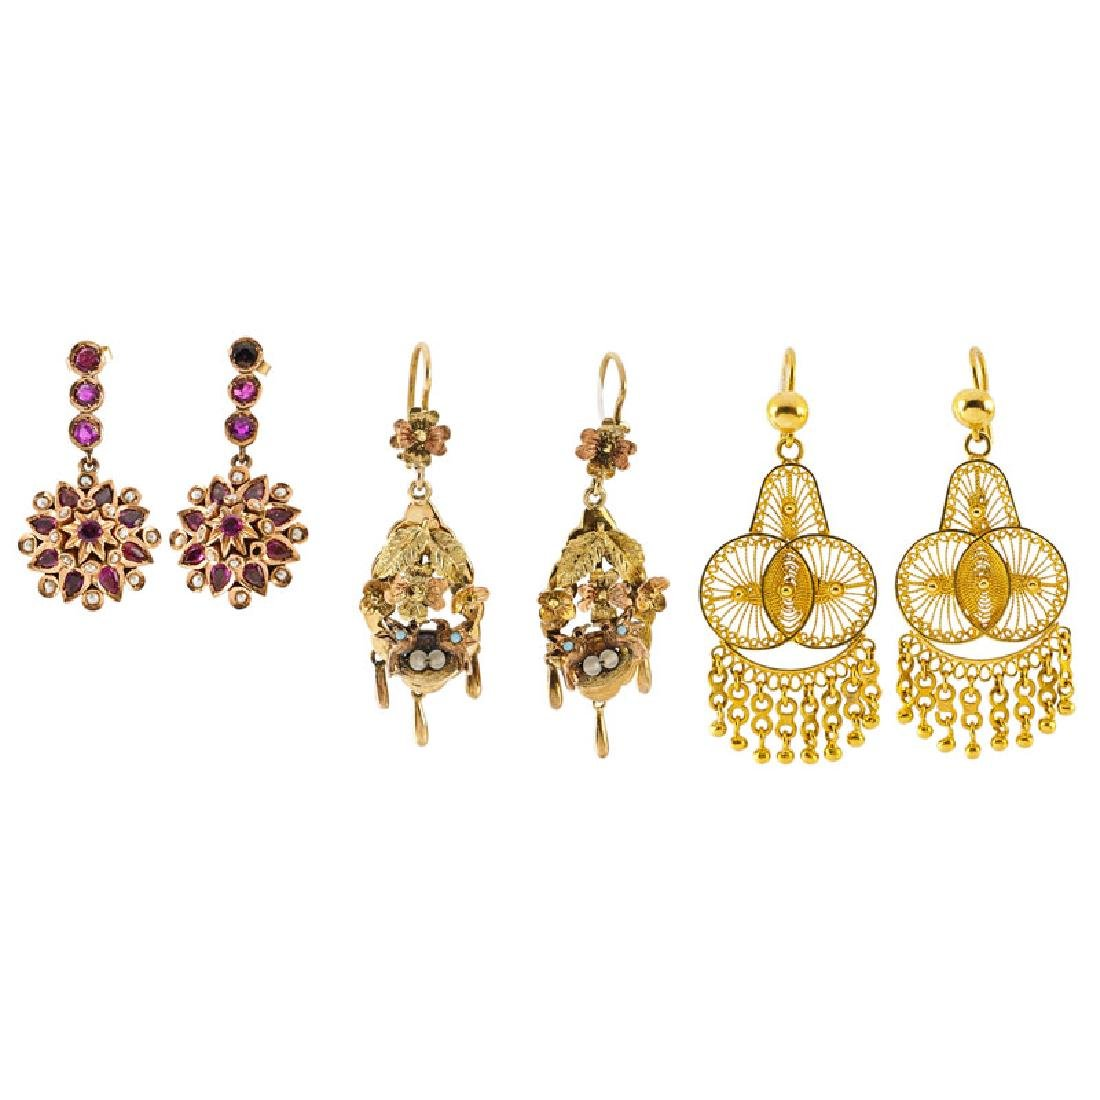 THREE PAIRS OF YELLOW GOLD DROP EARRINGS